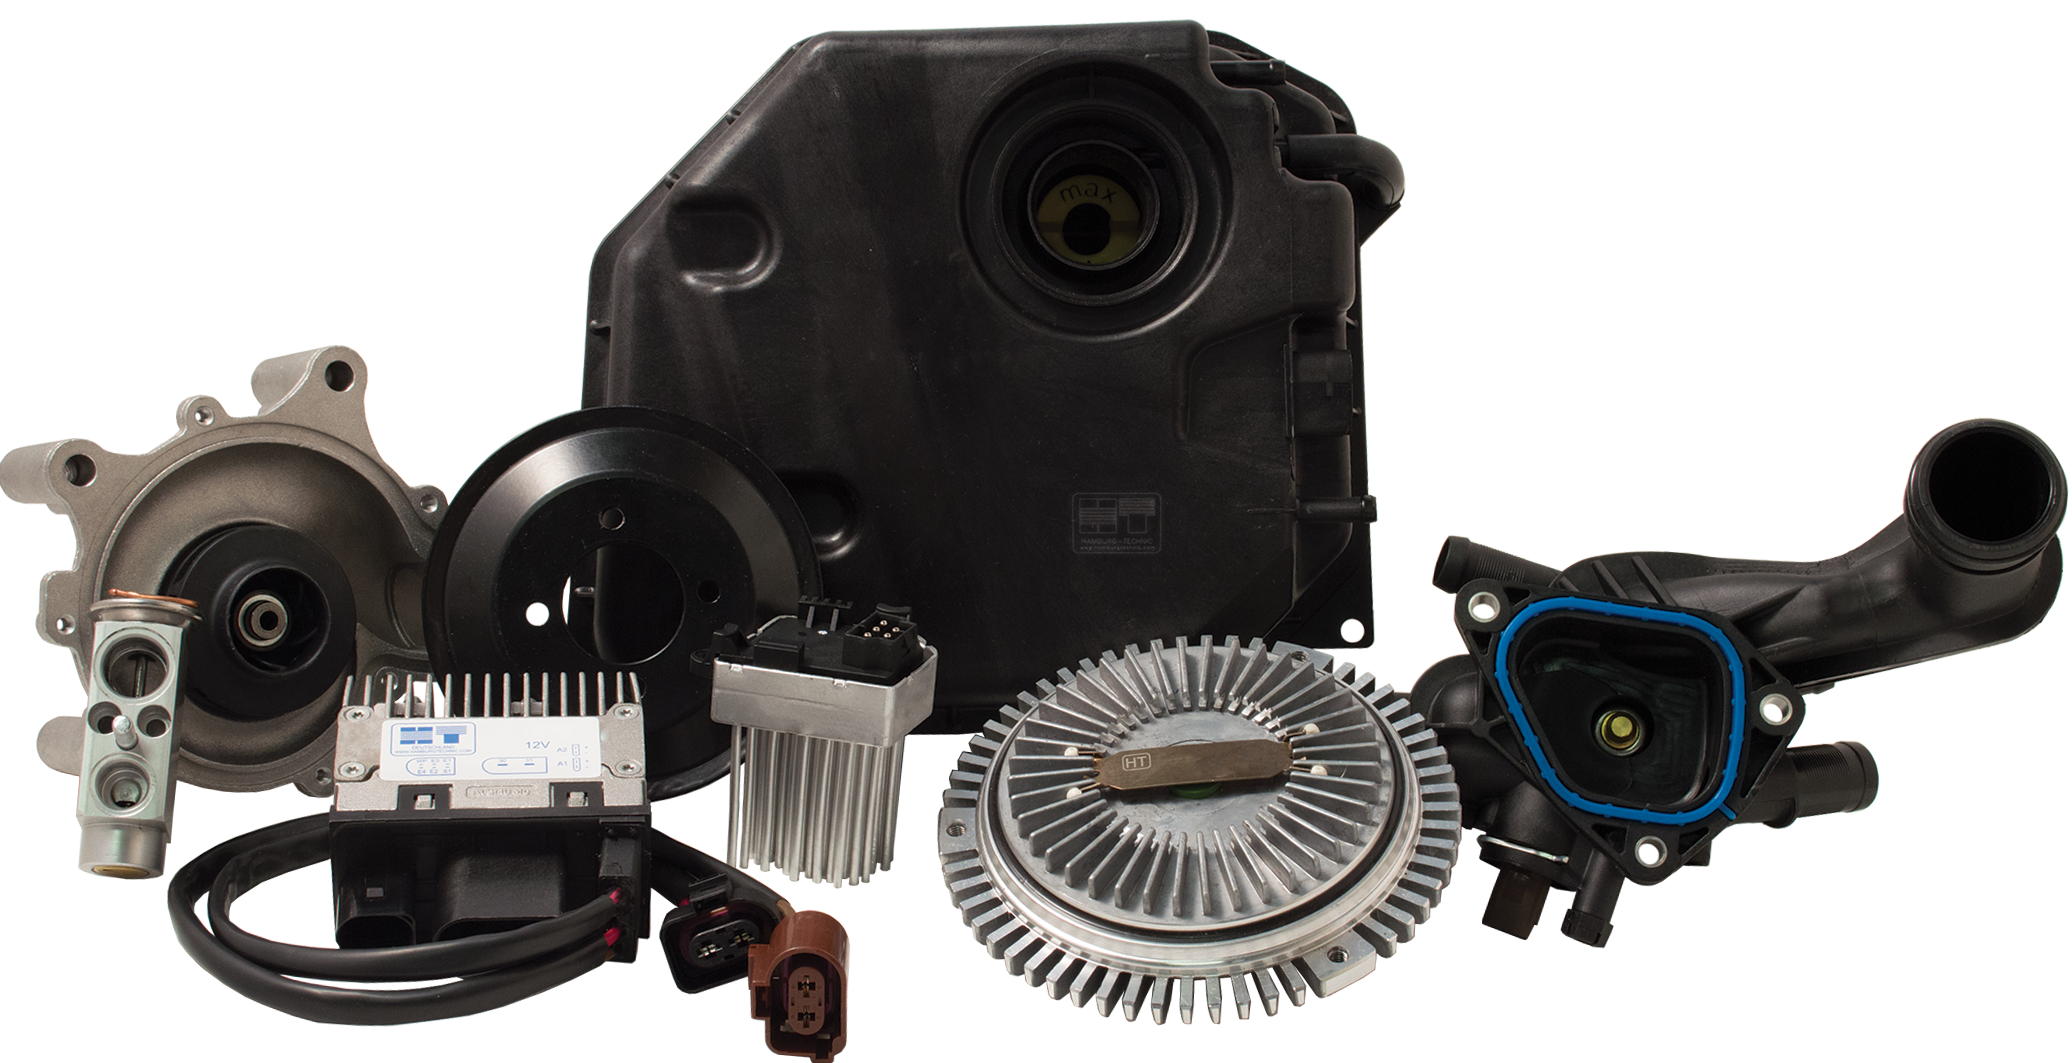 Hamburg Technic Heating And Cooling Parts Full Array Of Fan Clutches Fan Assemblies Thermostats And Thermostat Housing Hvac Control Water Pumps Control Unit